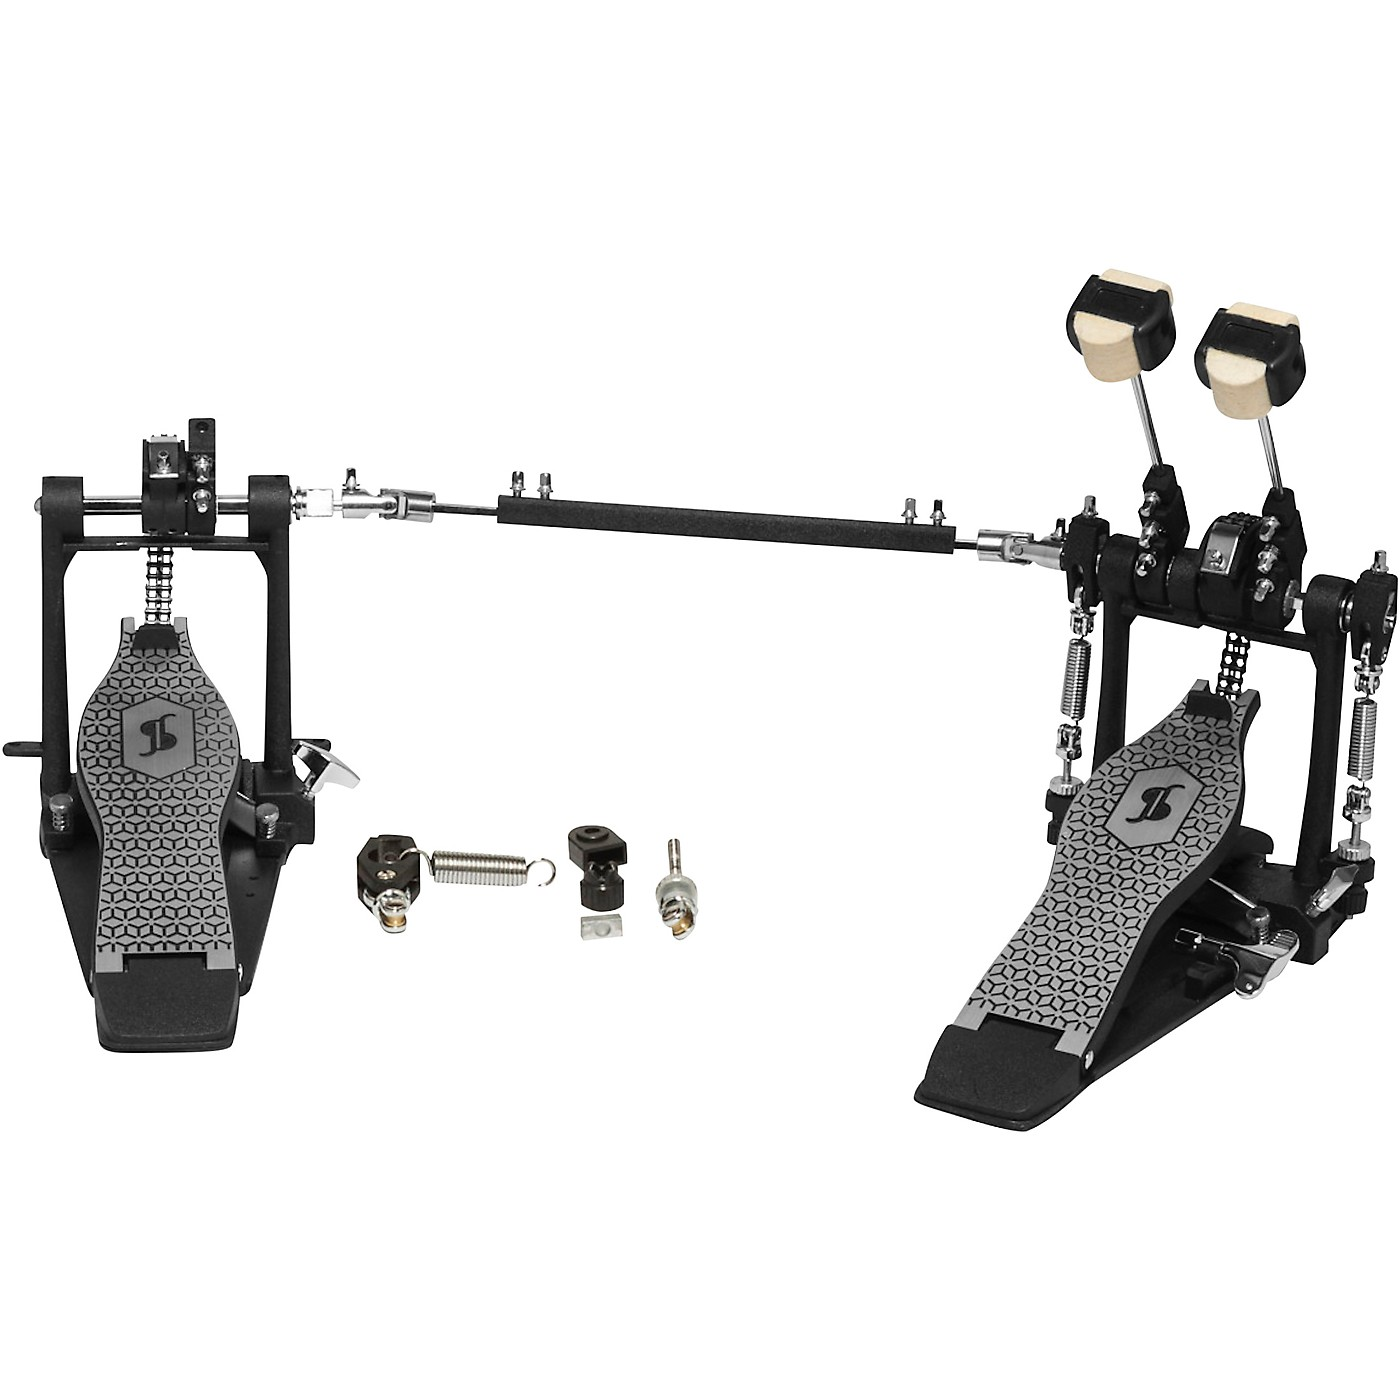 Stagg Double Bass Drum Pedal with Double Chain thumbnail